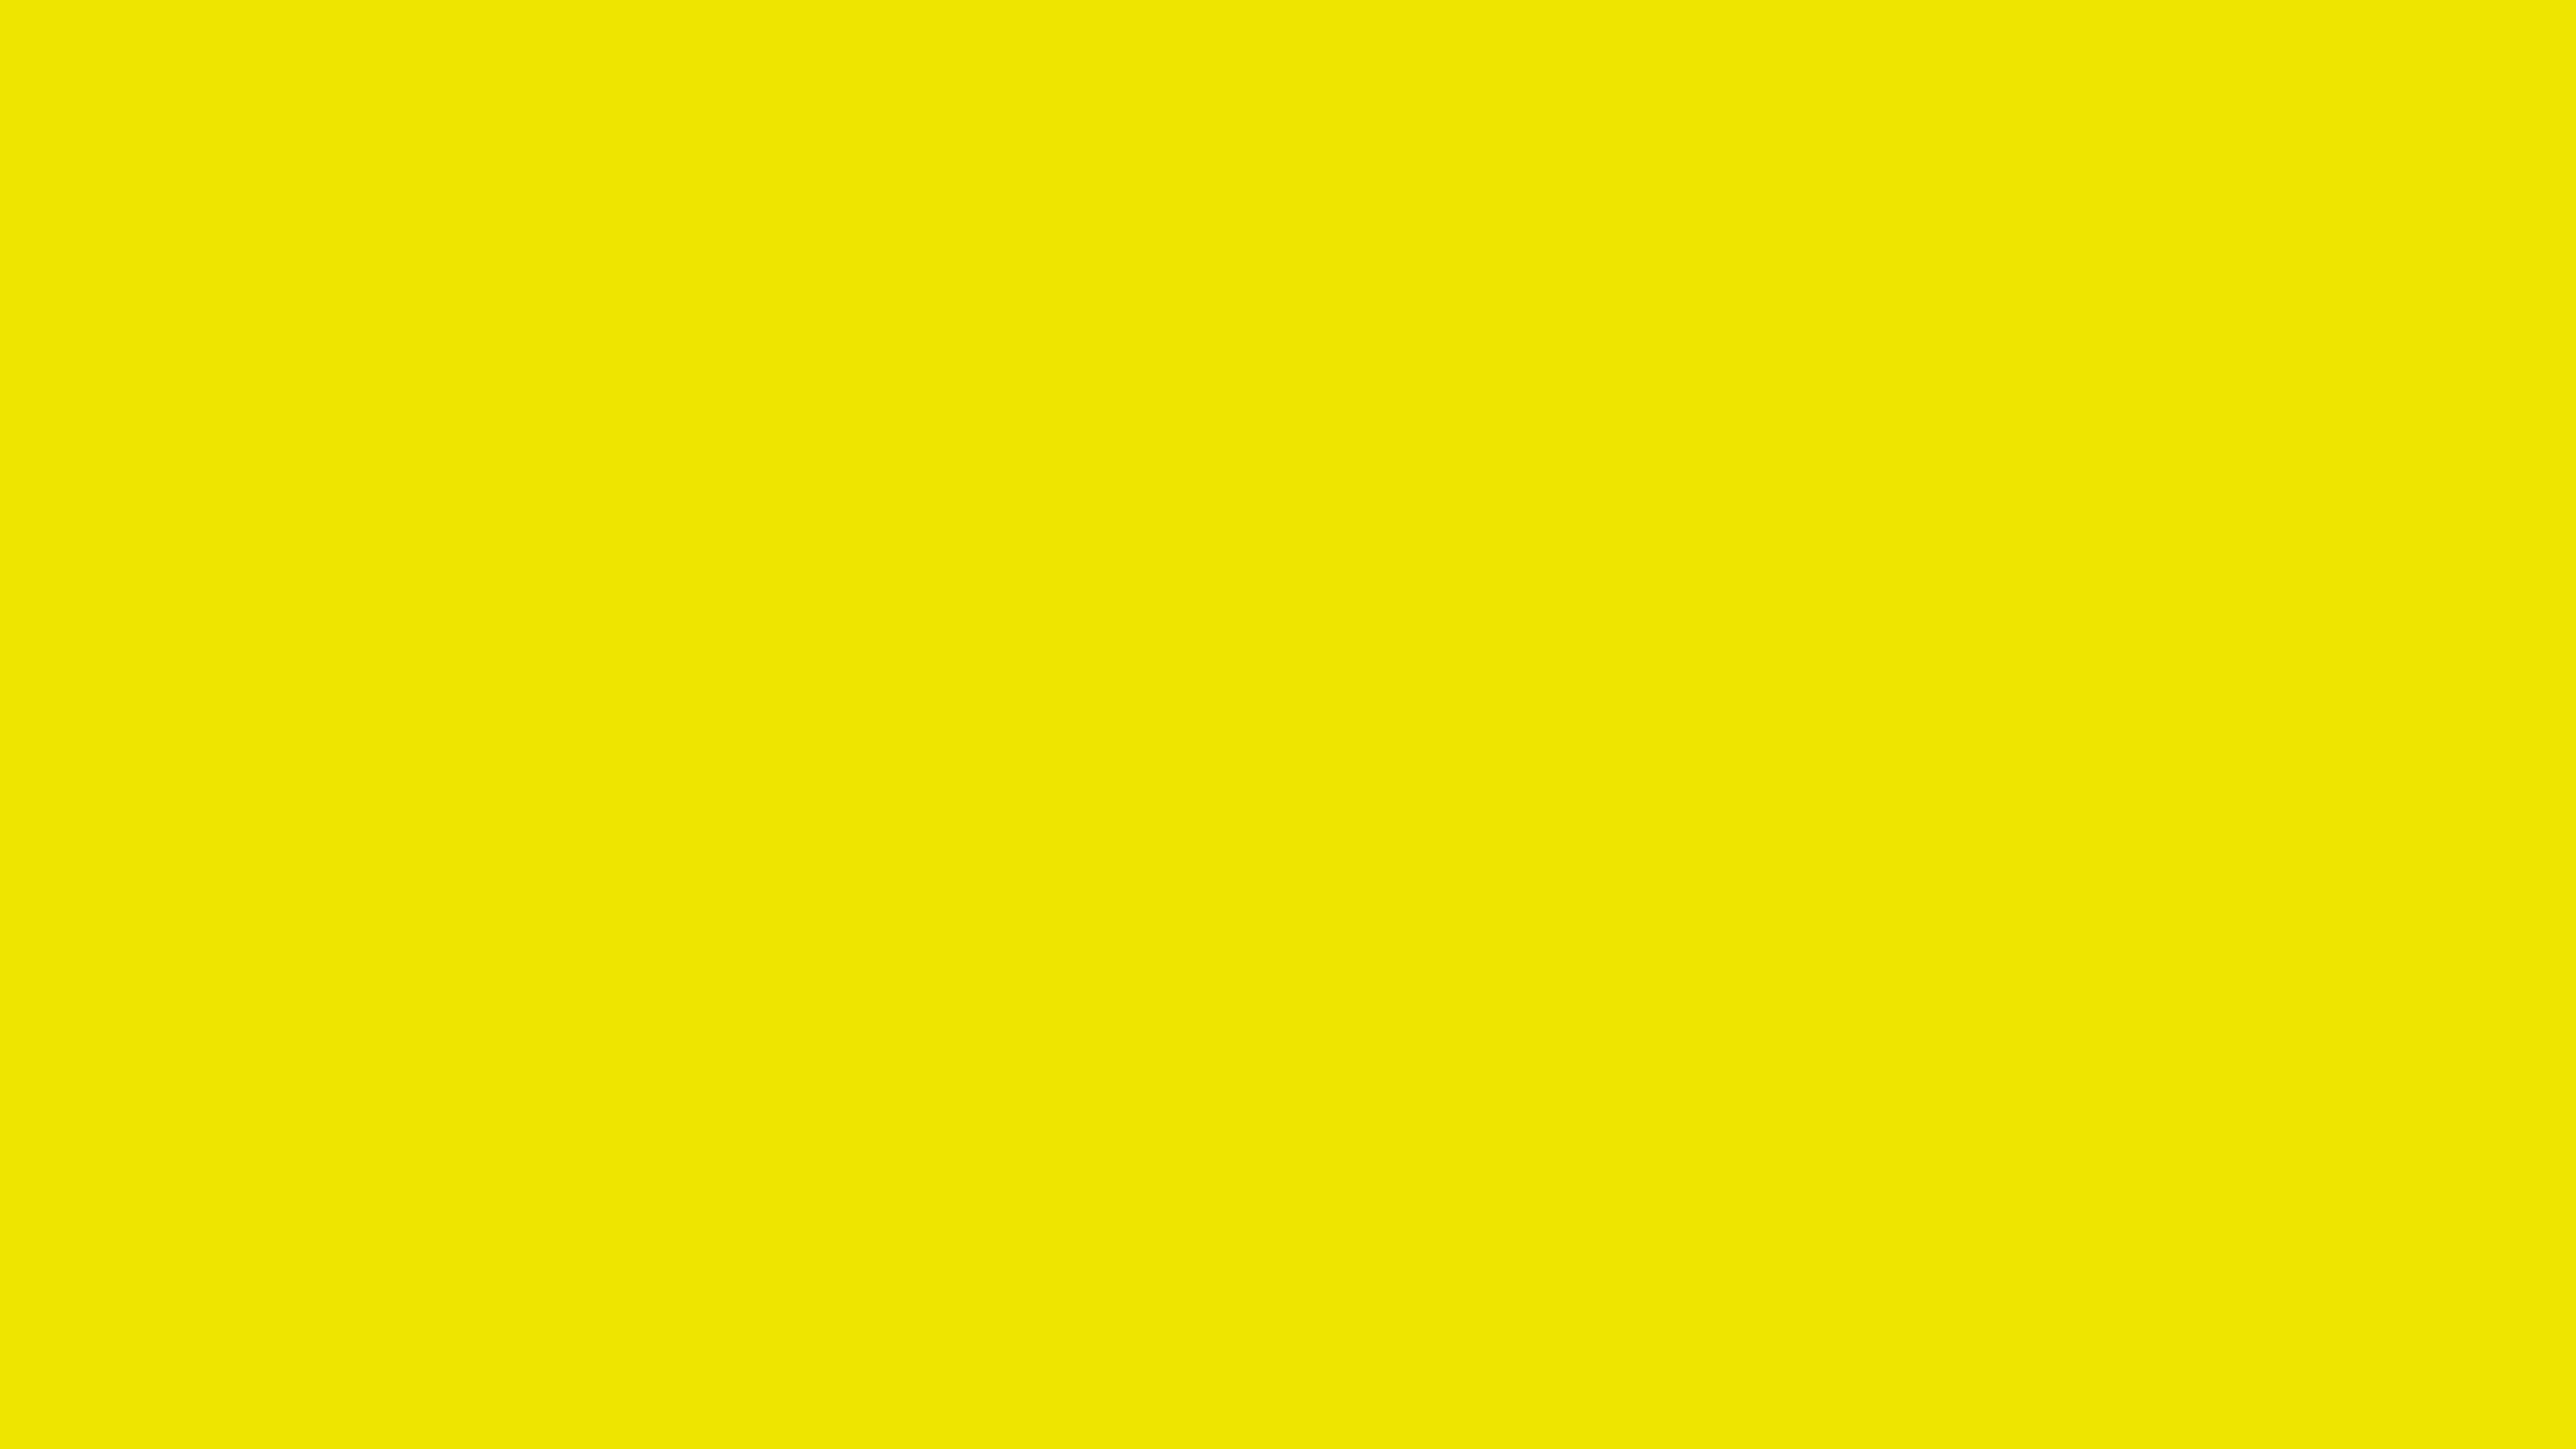 3840x2160 Titanium Yellow Solid Color Background